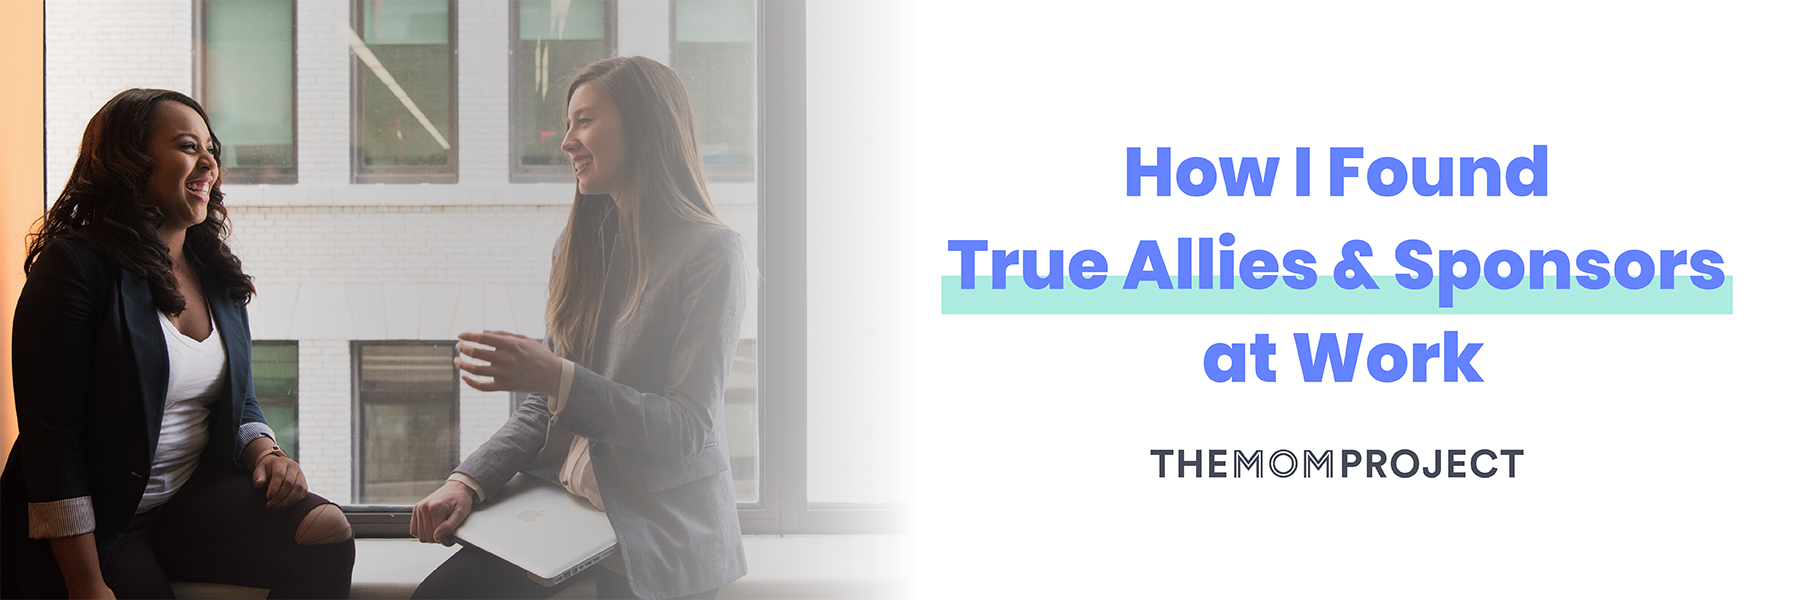 How I Found True Allies & Sponsors at Work